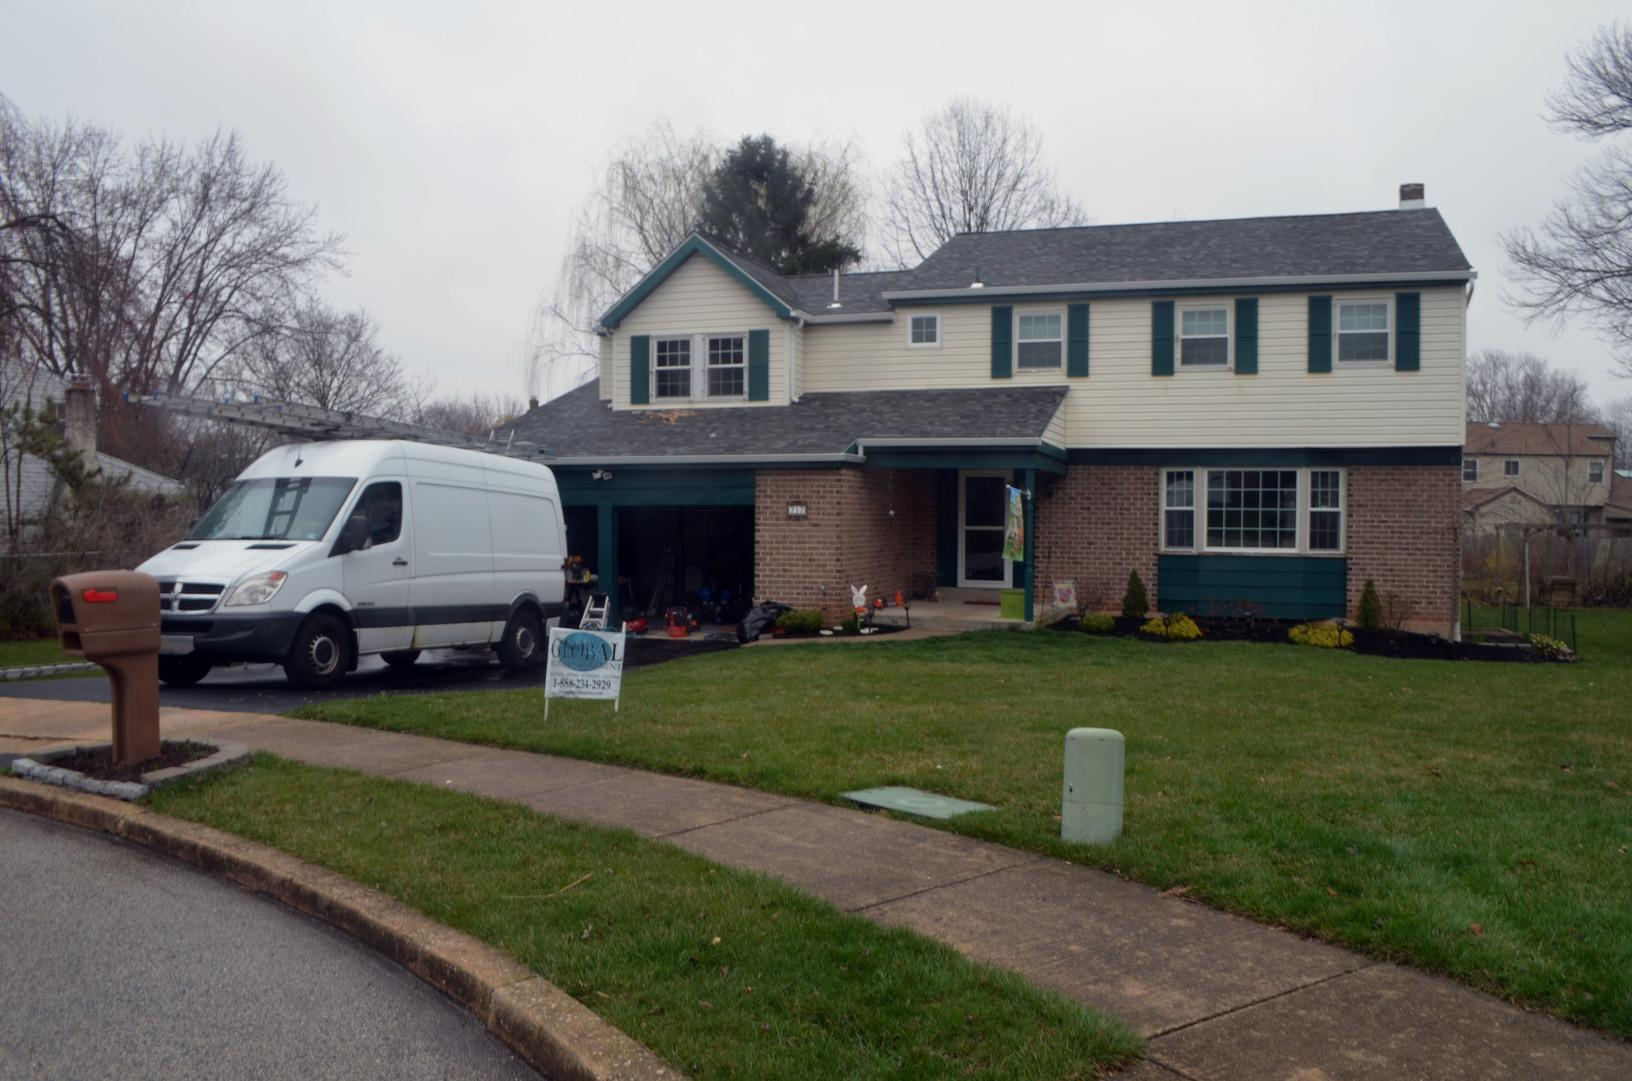 Owens Corning Duration Shingle and Marvin Infinity Window Installation in PA